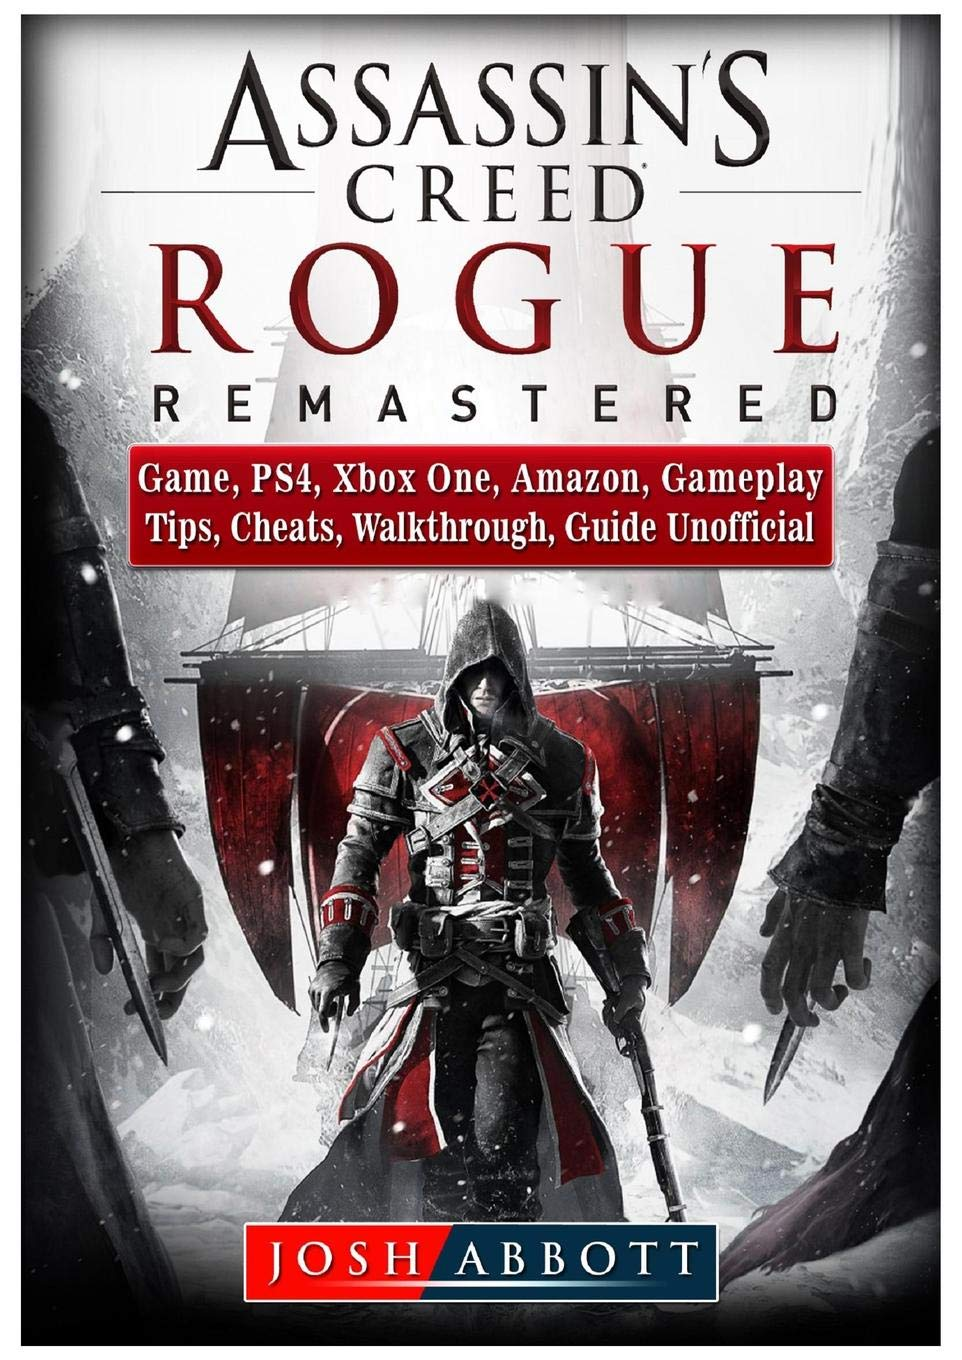 Assassins Creed Rogue Remastered Game, PS4, Xbox One, Amazon